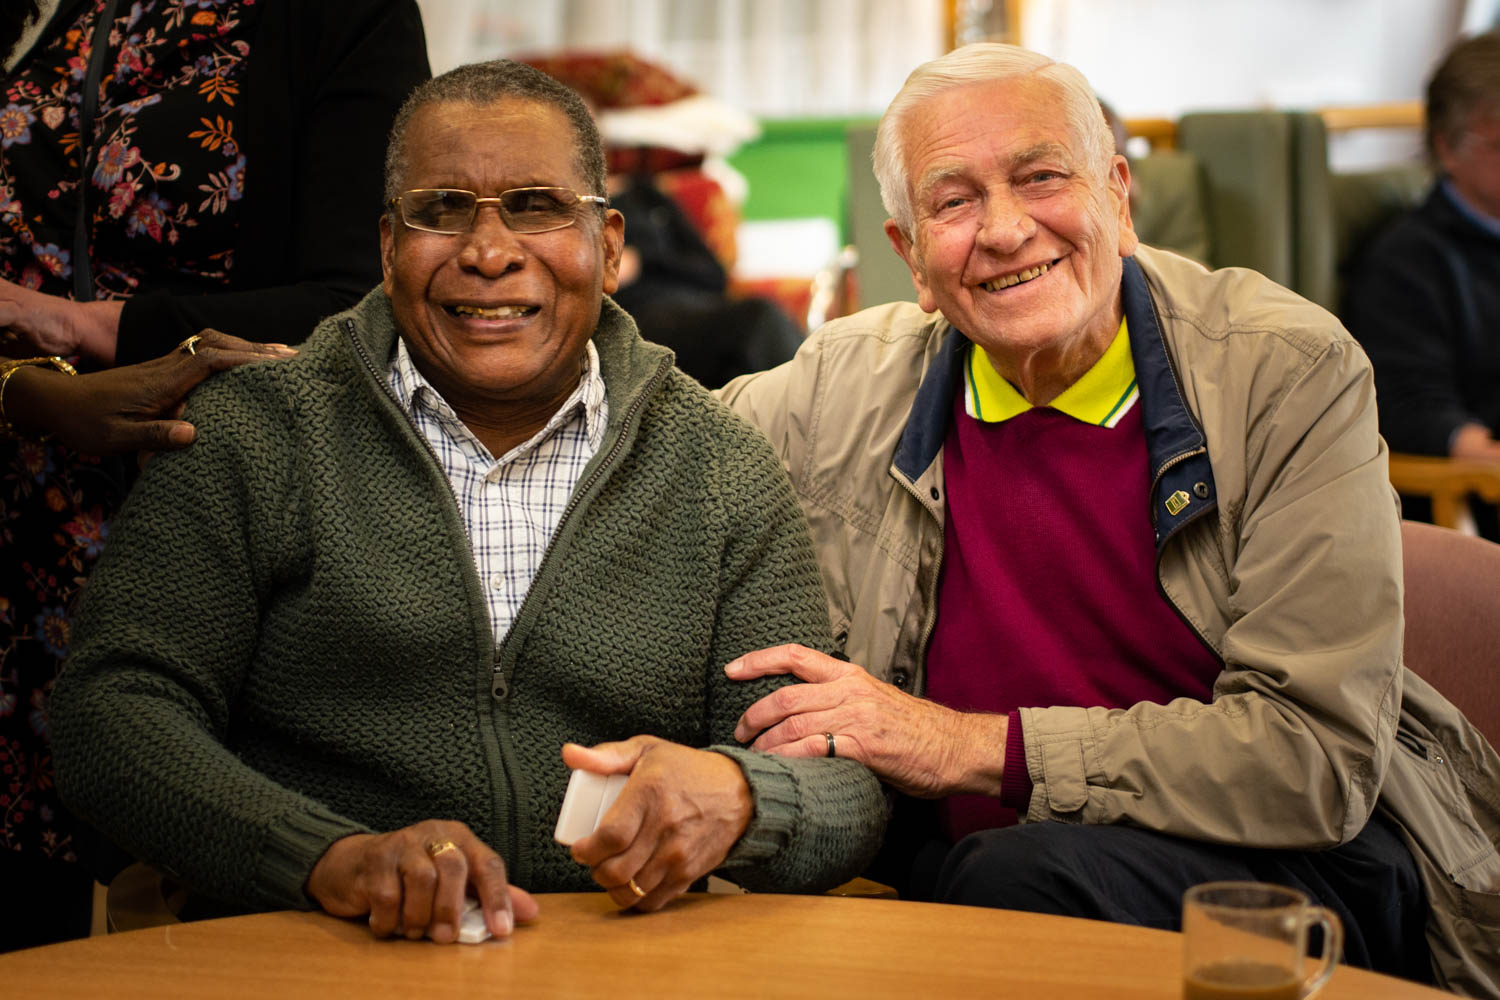 Two elderly men smilimg